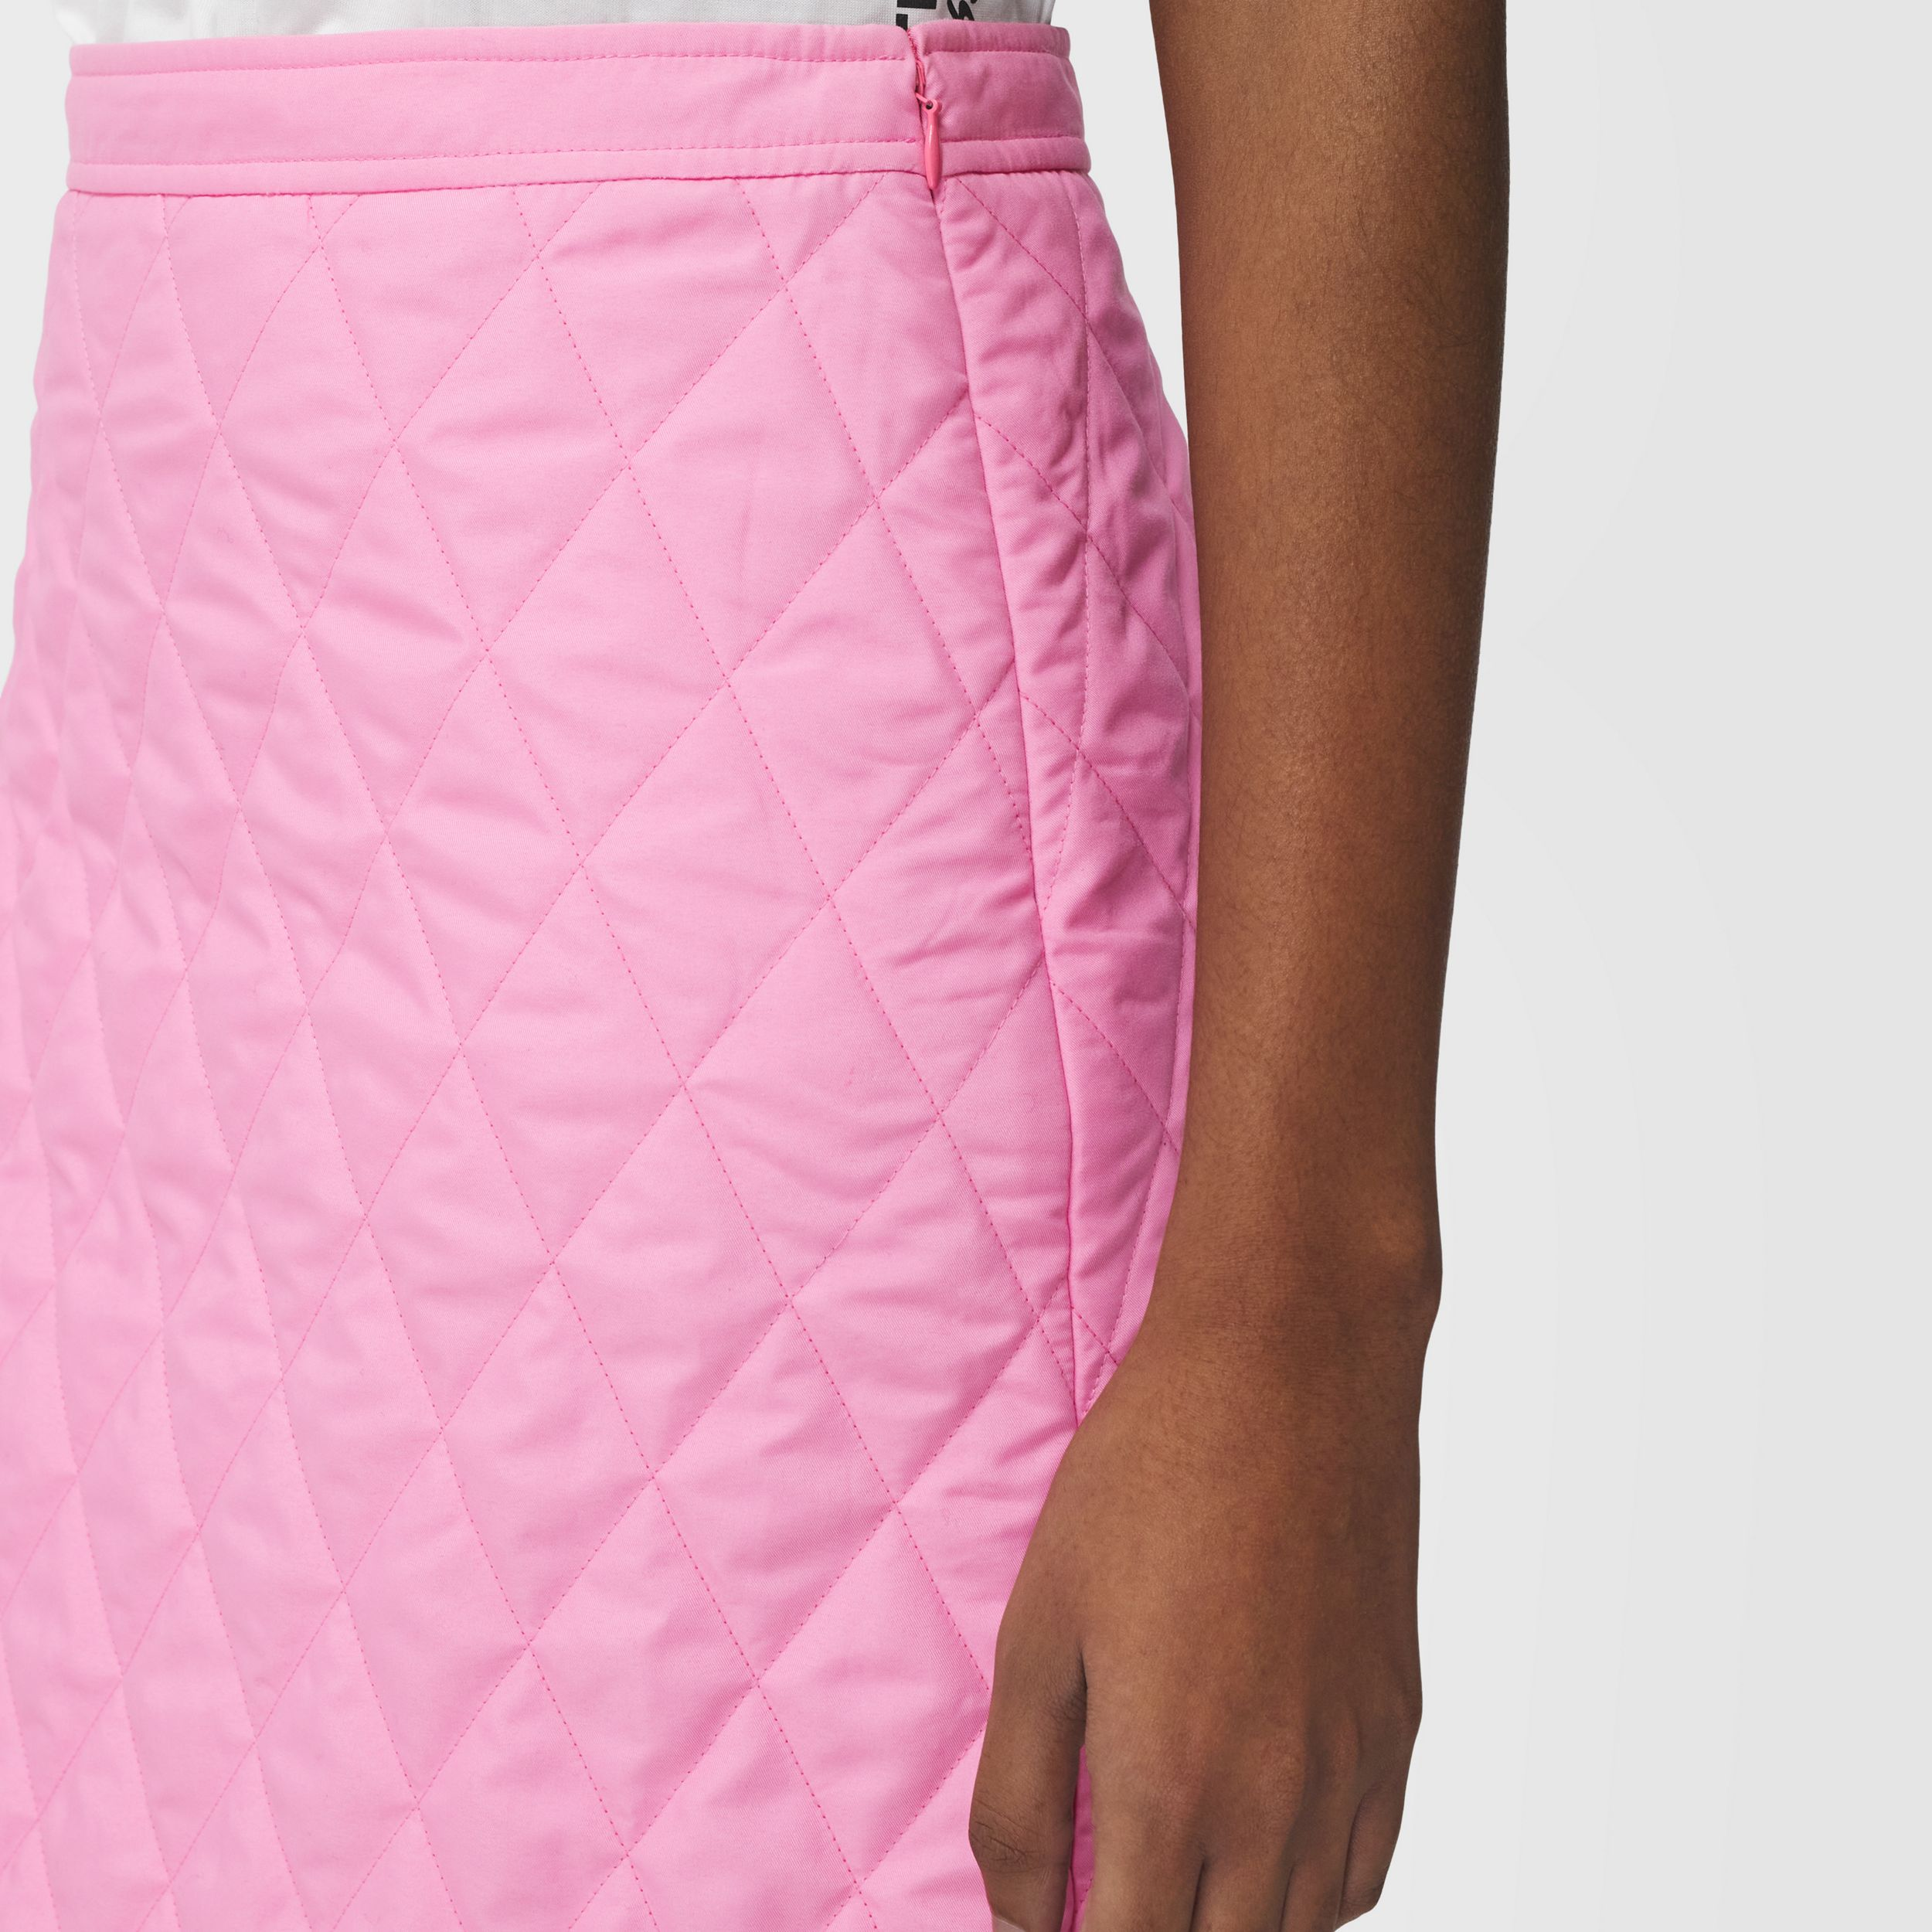 Diamond Quilted Skirt in Bubblegum Pink - Women | Burberry - 2